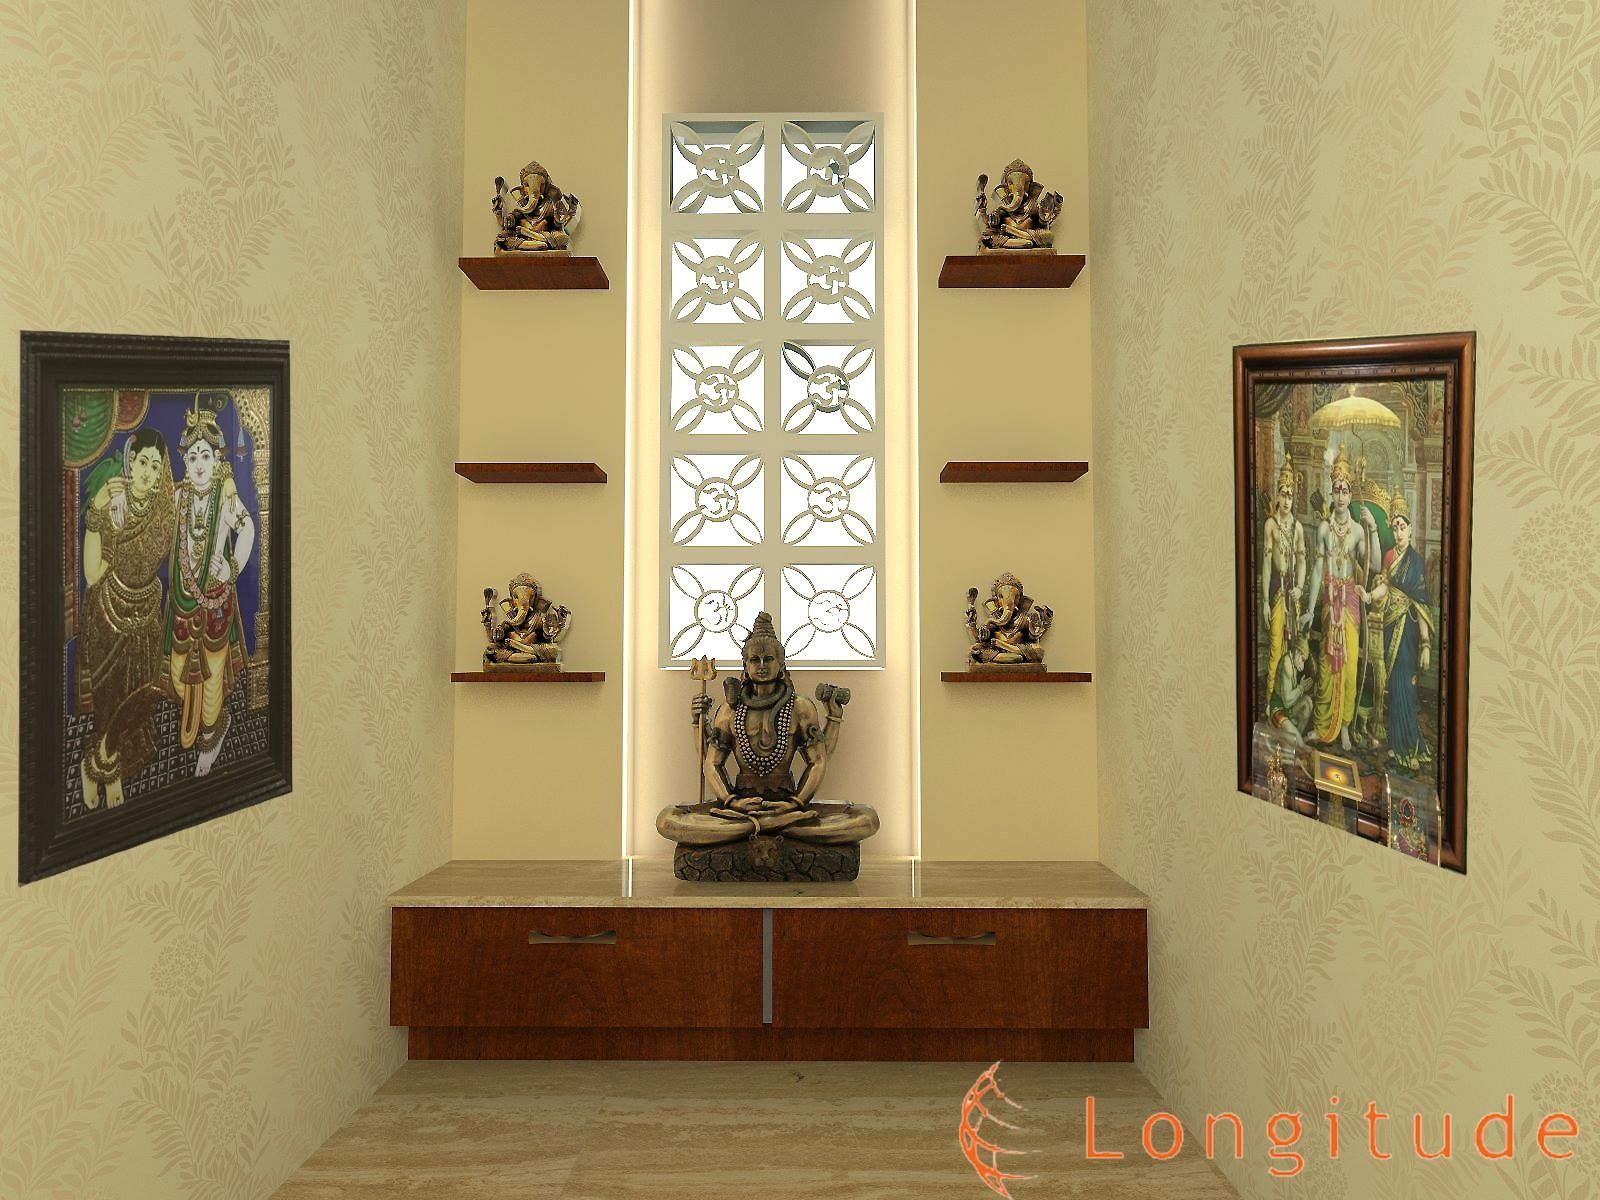 pooja room designs for home. Meditation rooms  7413b076a7d9af87f5a39715315b5c42 jpg 1600 1200 Decor